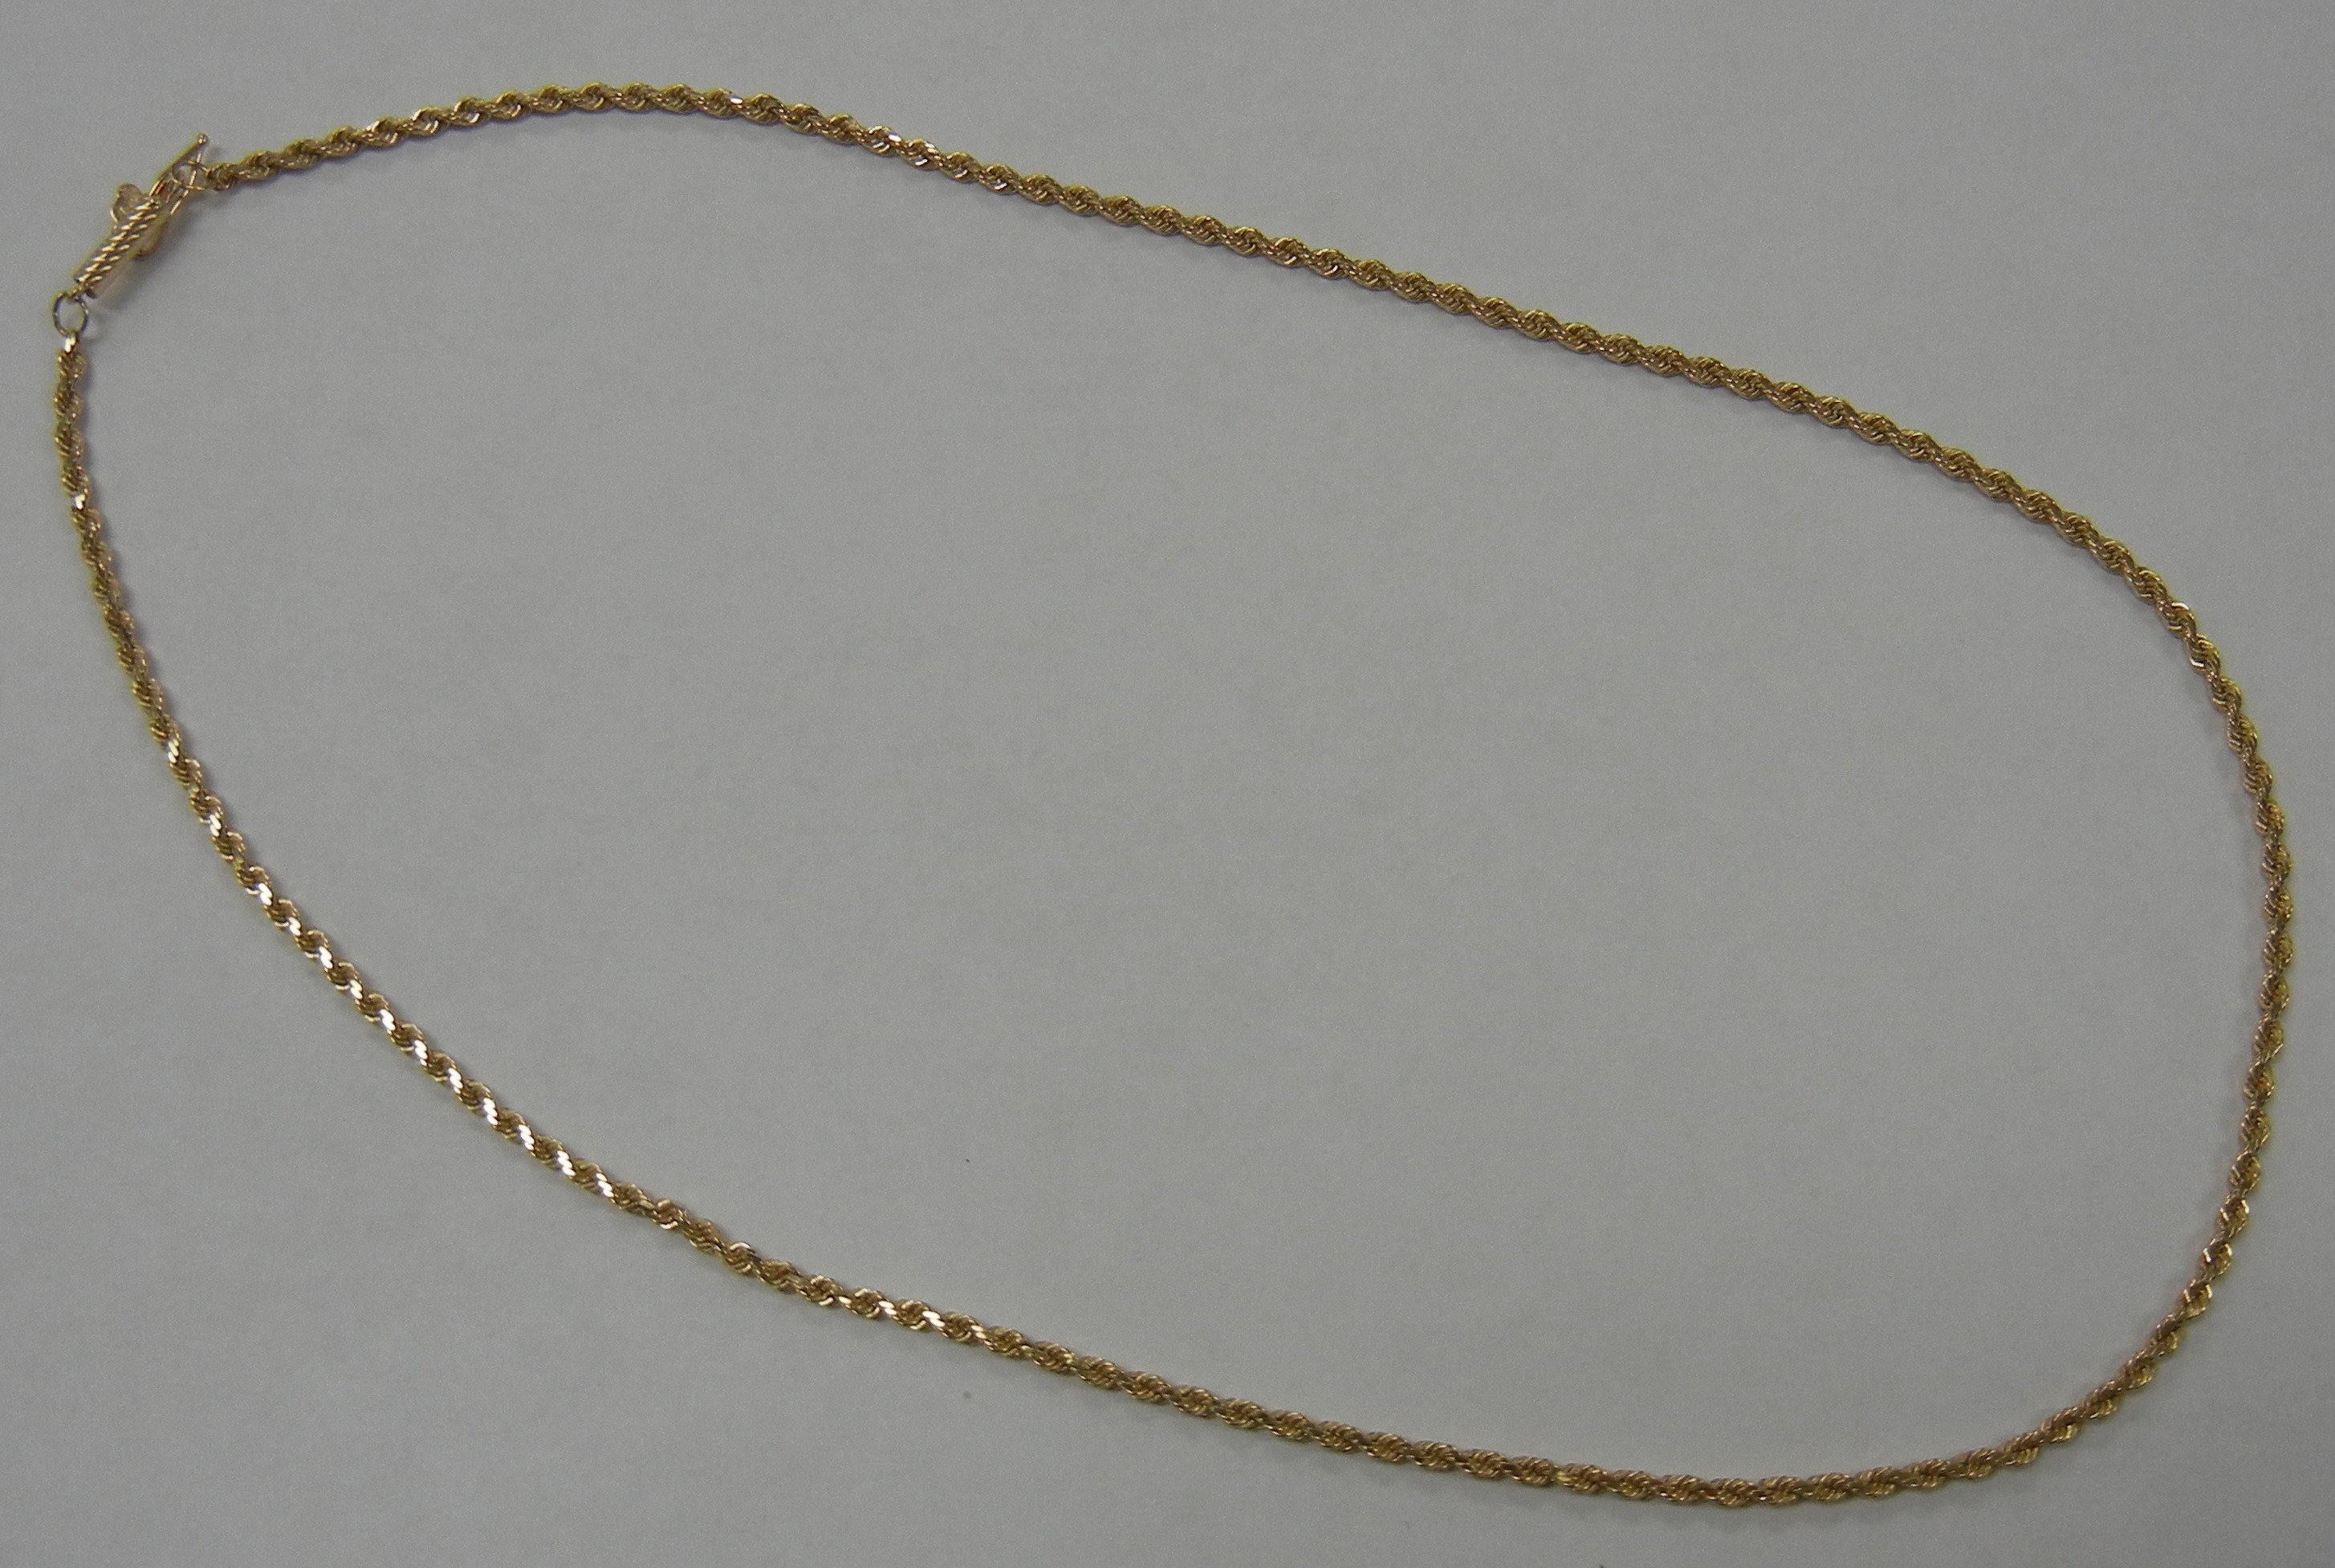 14 KT YELLOW GOLD SOLID ROPE CHAIN